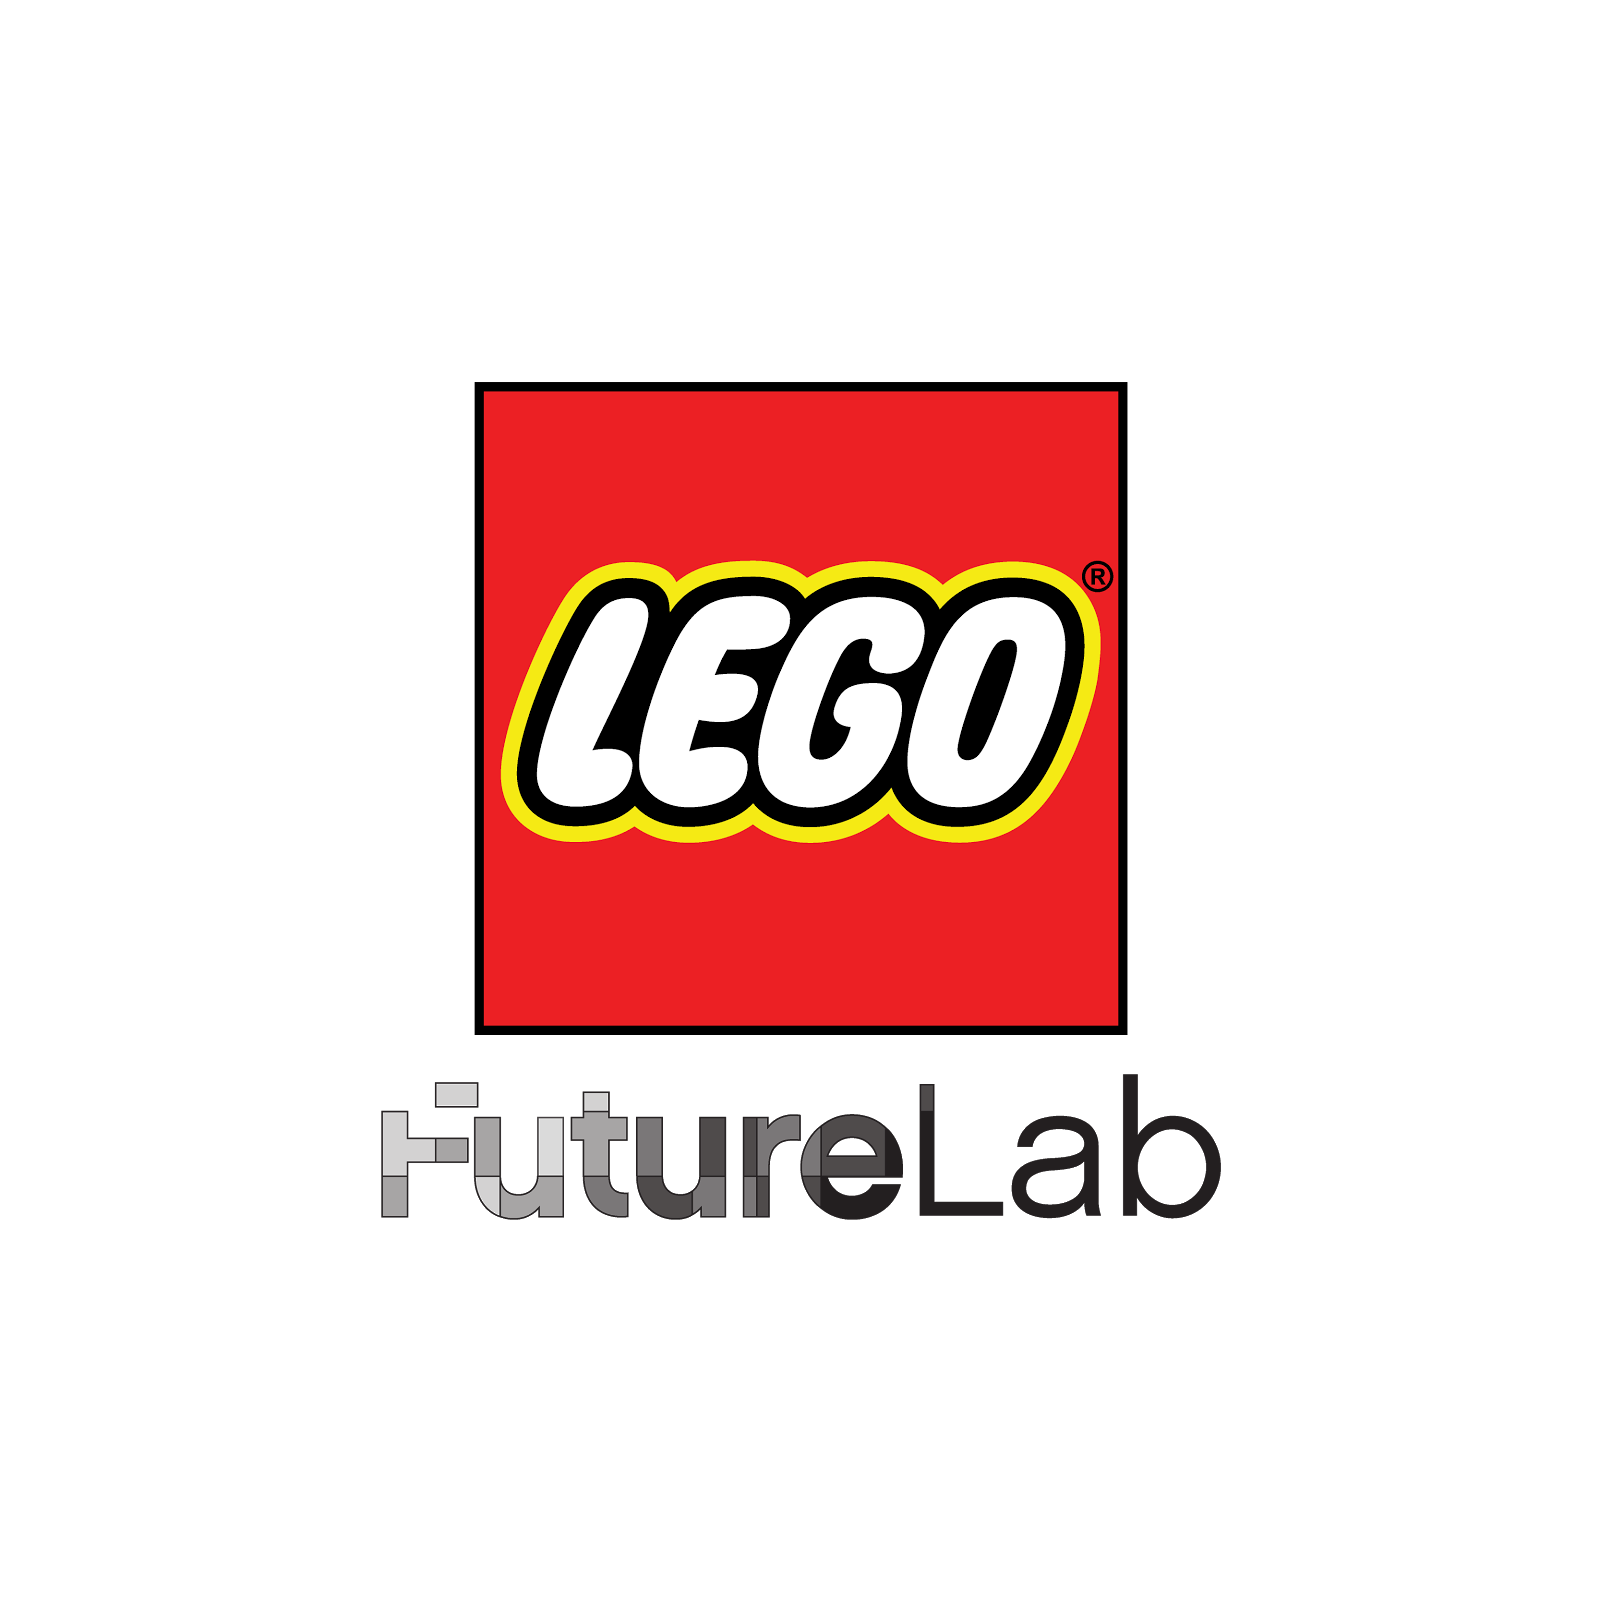 lego-01 future lab.png